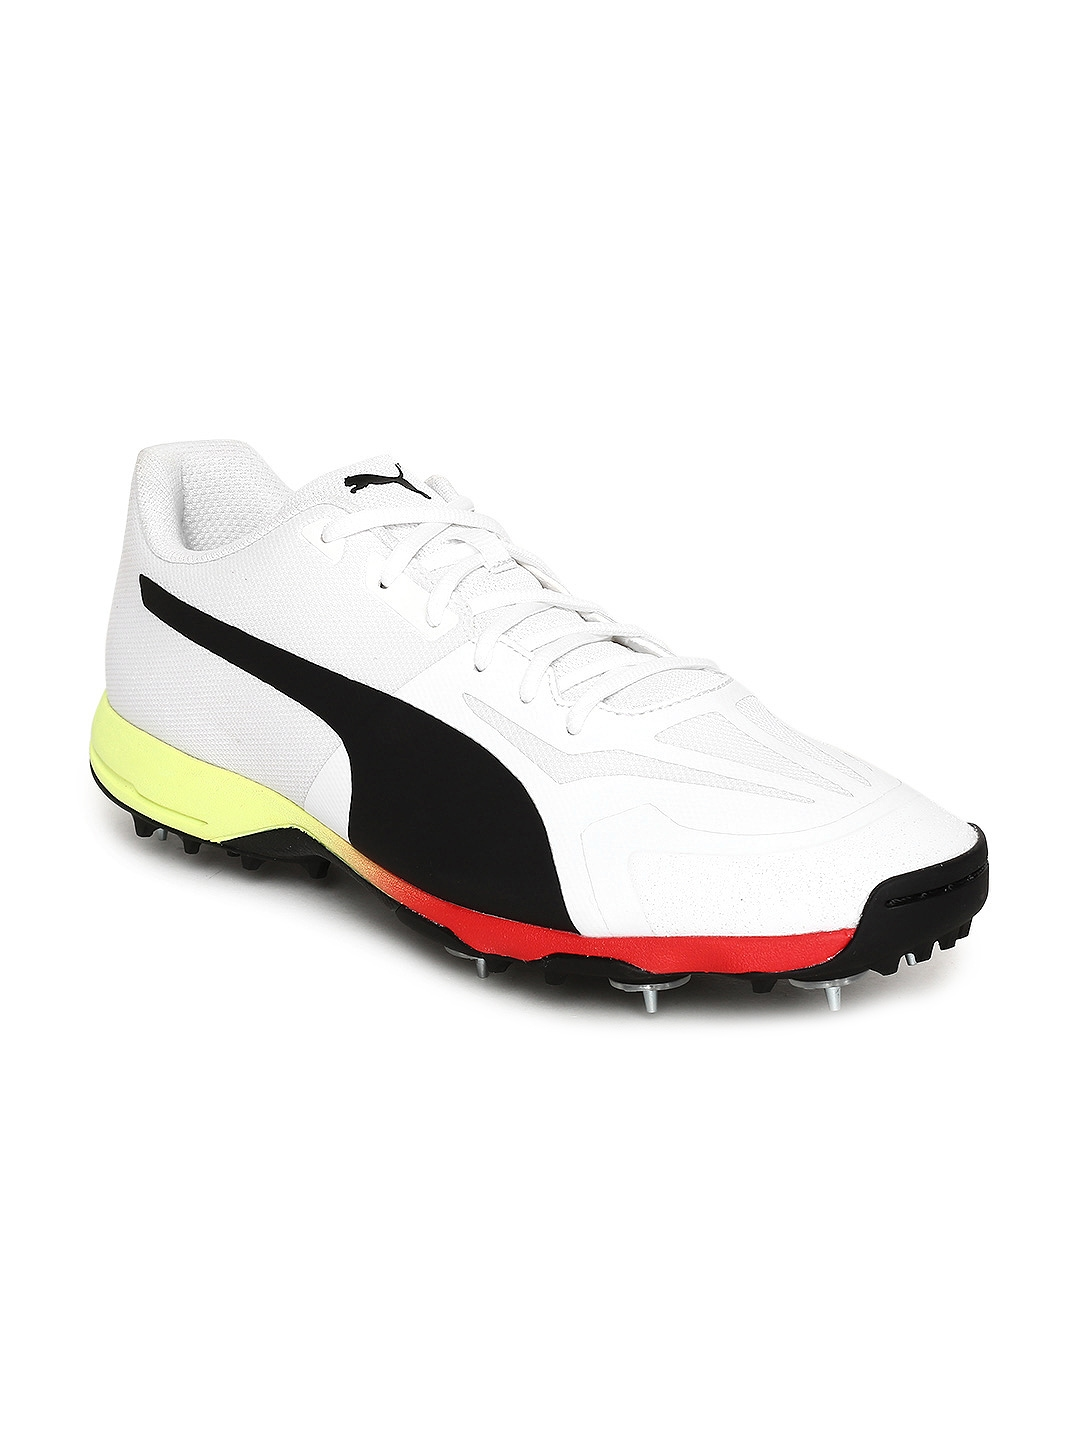 Buy Puma Men White EvoSPEED 18.1 Cricket Shoes - Sports Shoes for ... a60077292